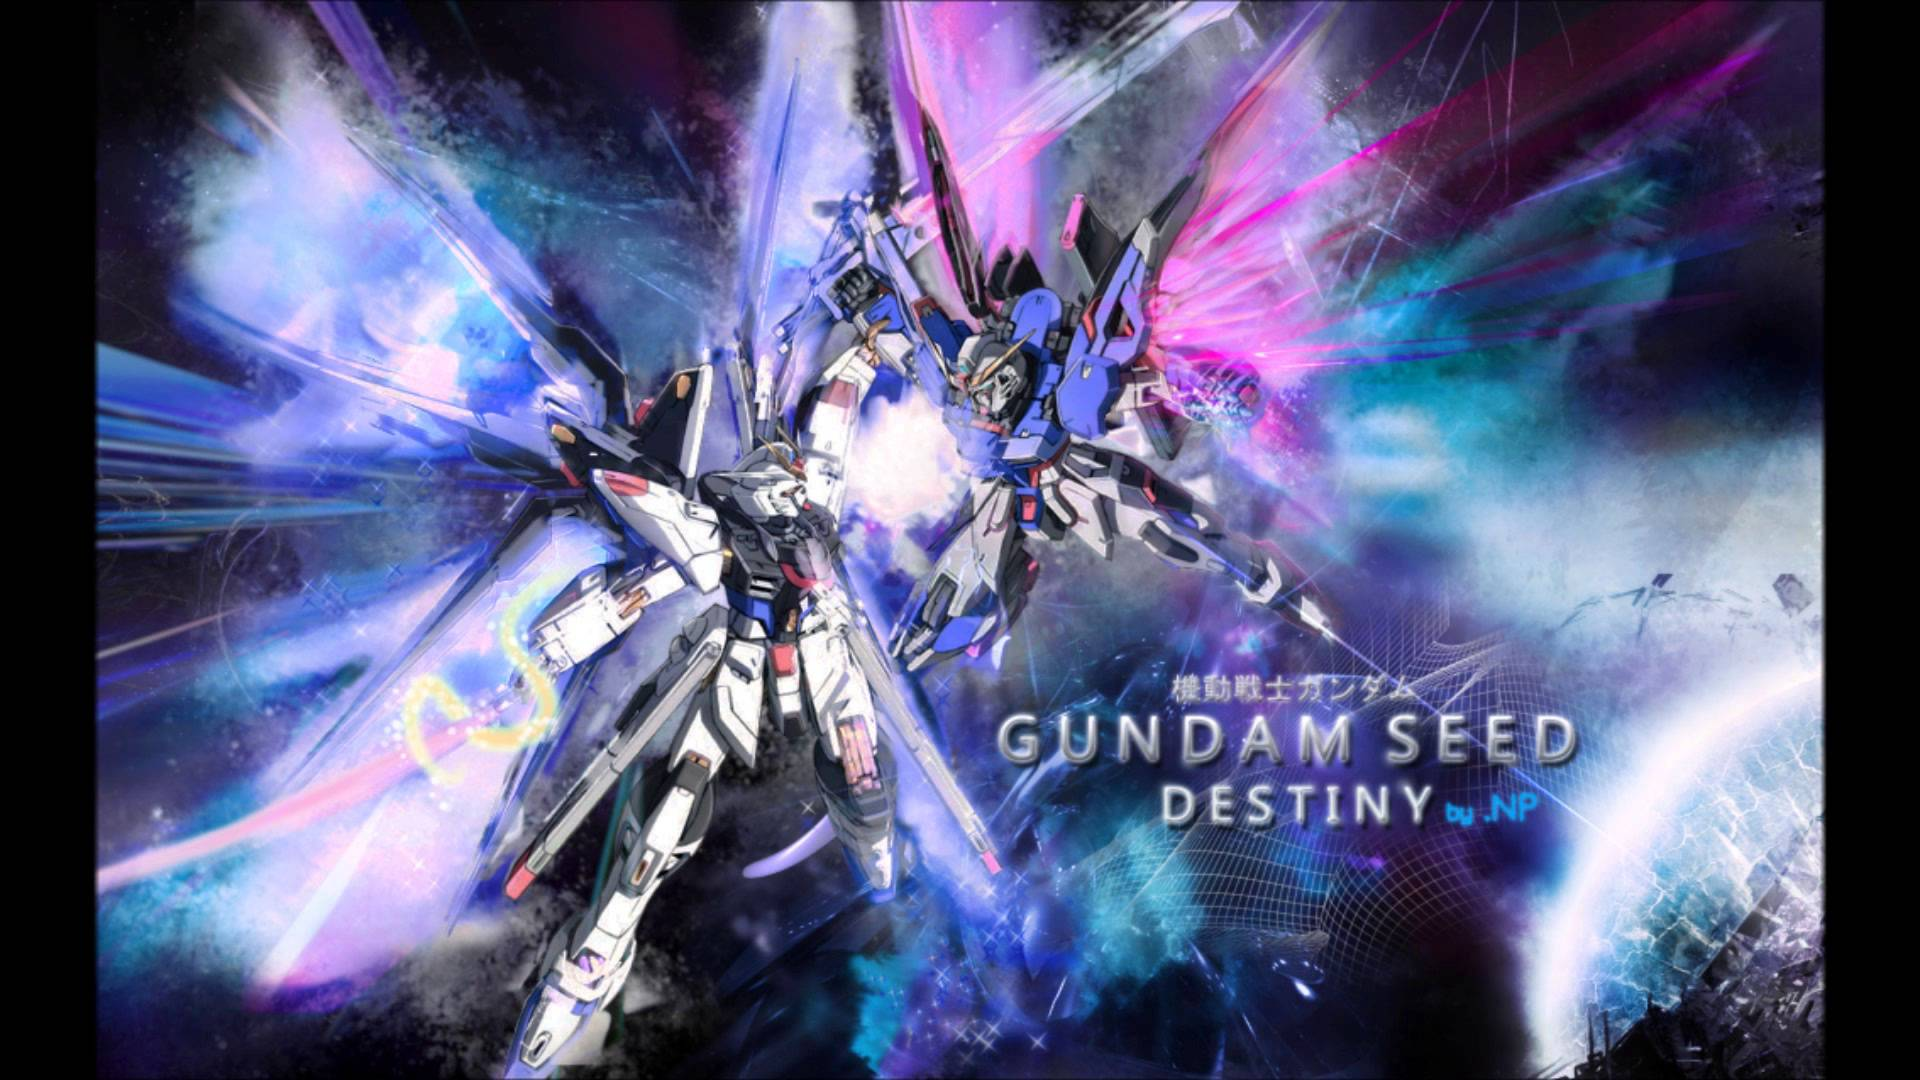 1920x1080 - Mobile Suit Gundam Seed Destiny Wallpapers 23